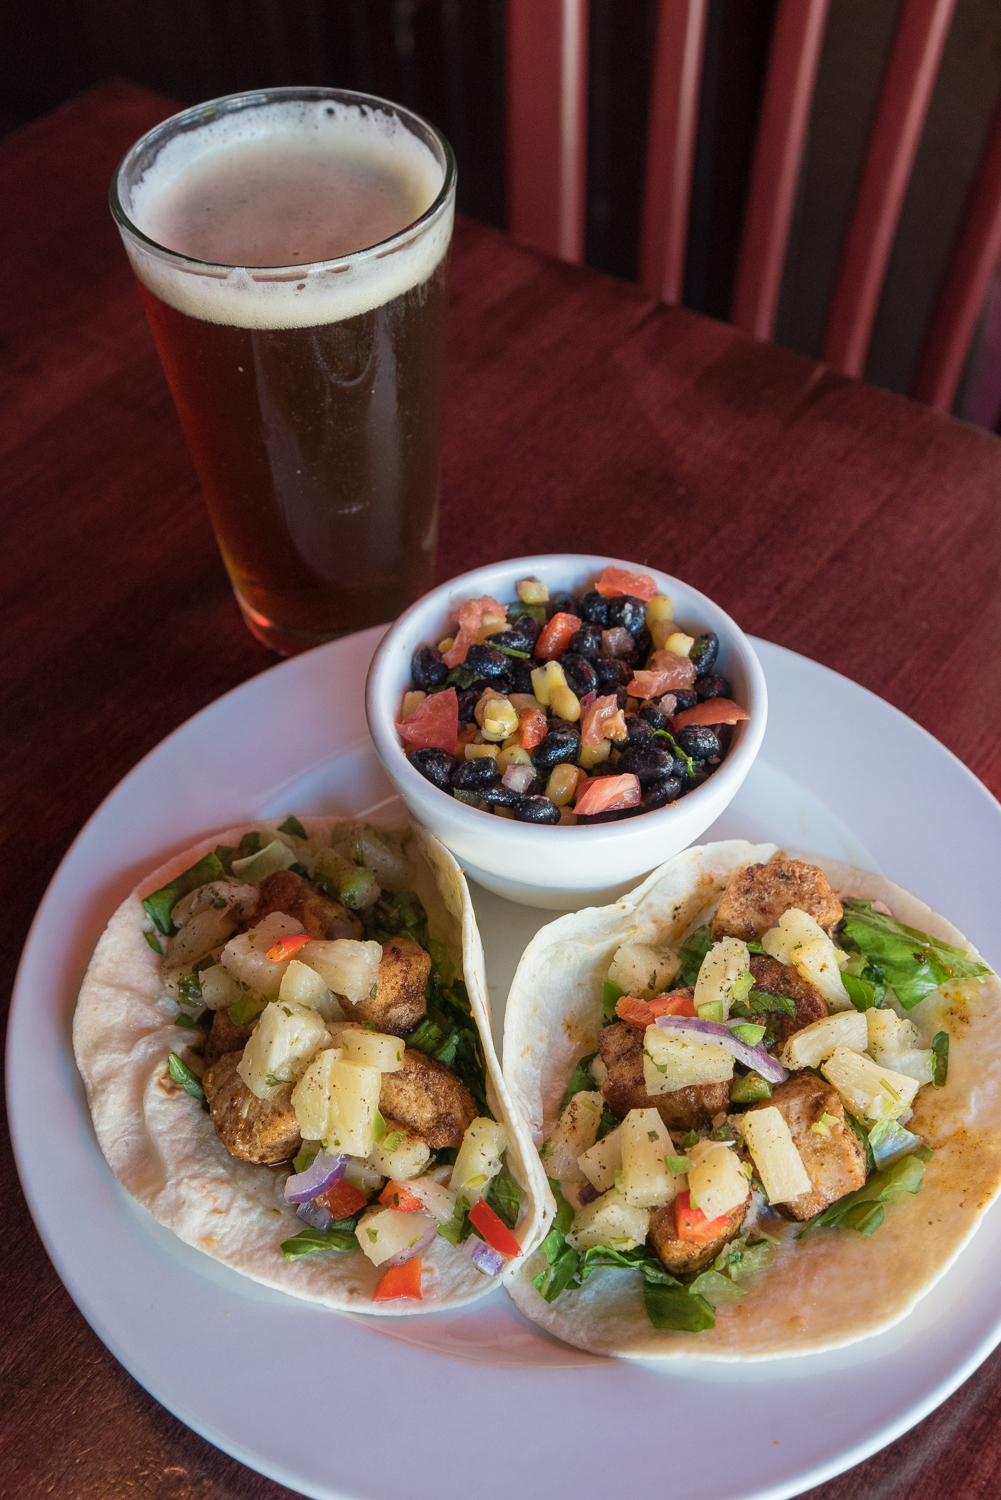 Mahi Mahi Tacos: pan seared Mahi Mahi, chipotle mayo, and pineapple salsa / Image: Phil Armstrong, Cincinnati Refined